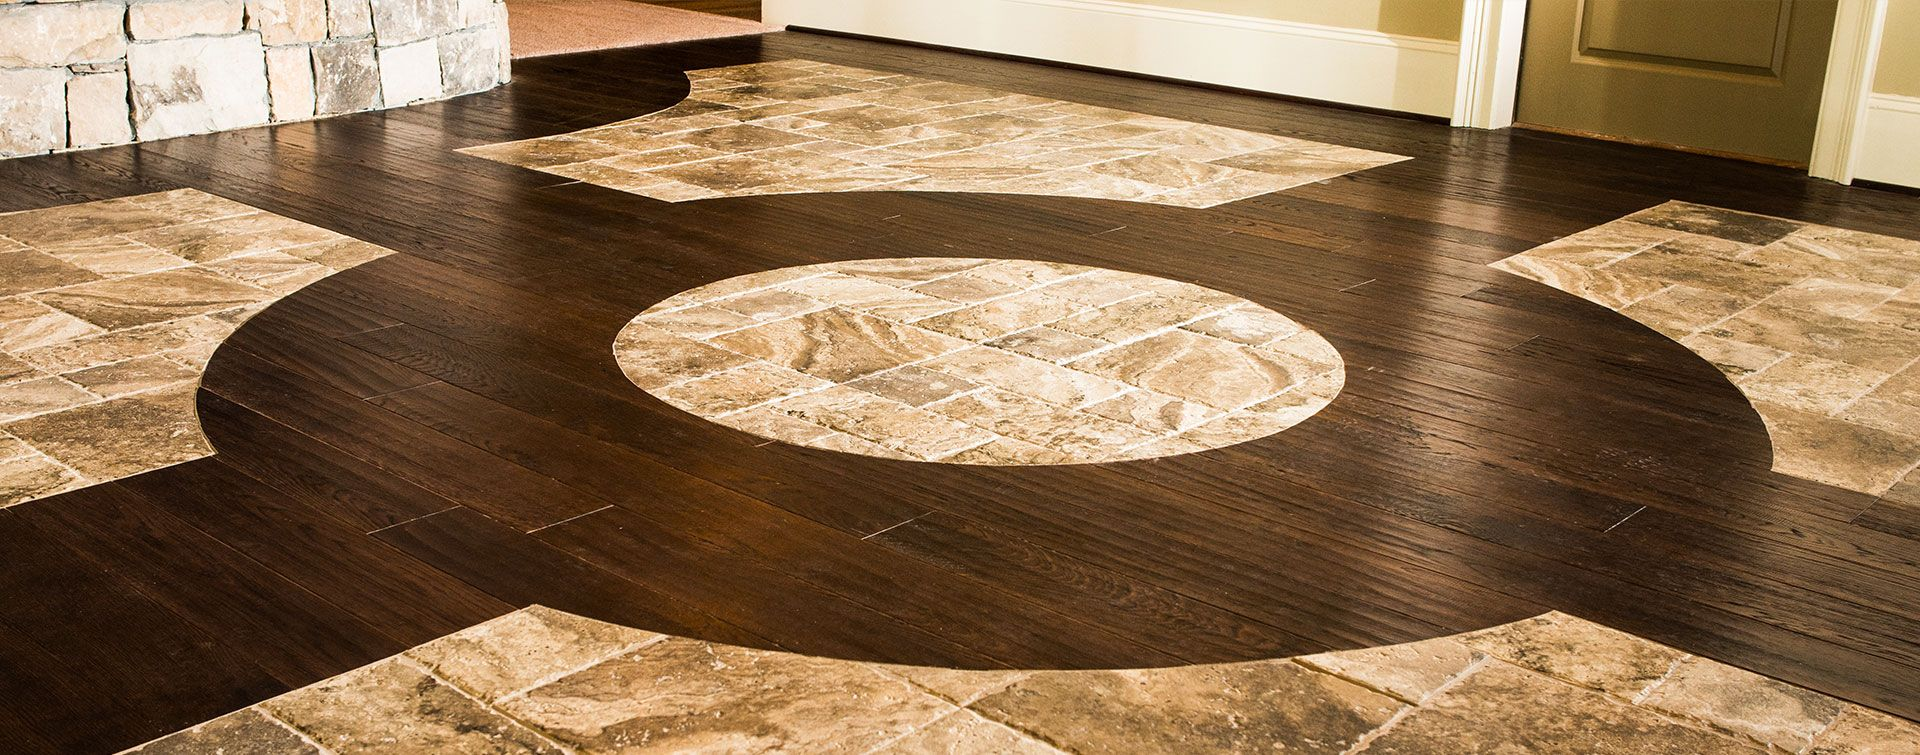 Wood tile flooring patterns google search laundry pinterest floor design tile flooring Wood pattern tile